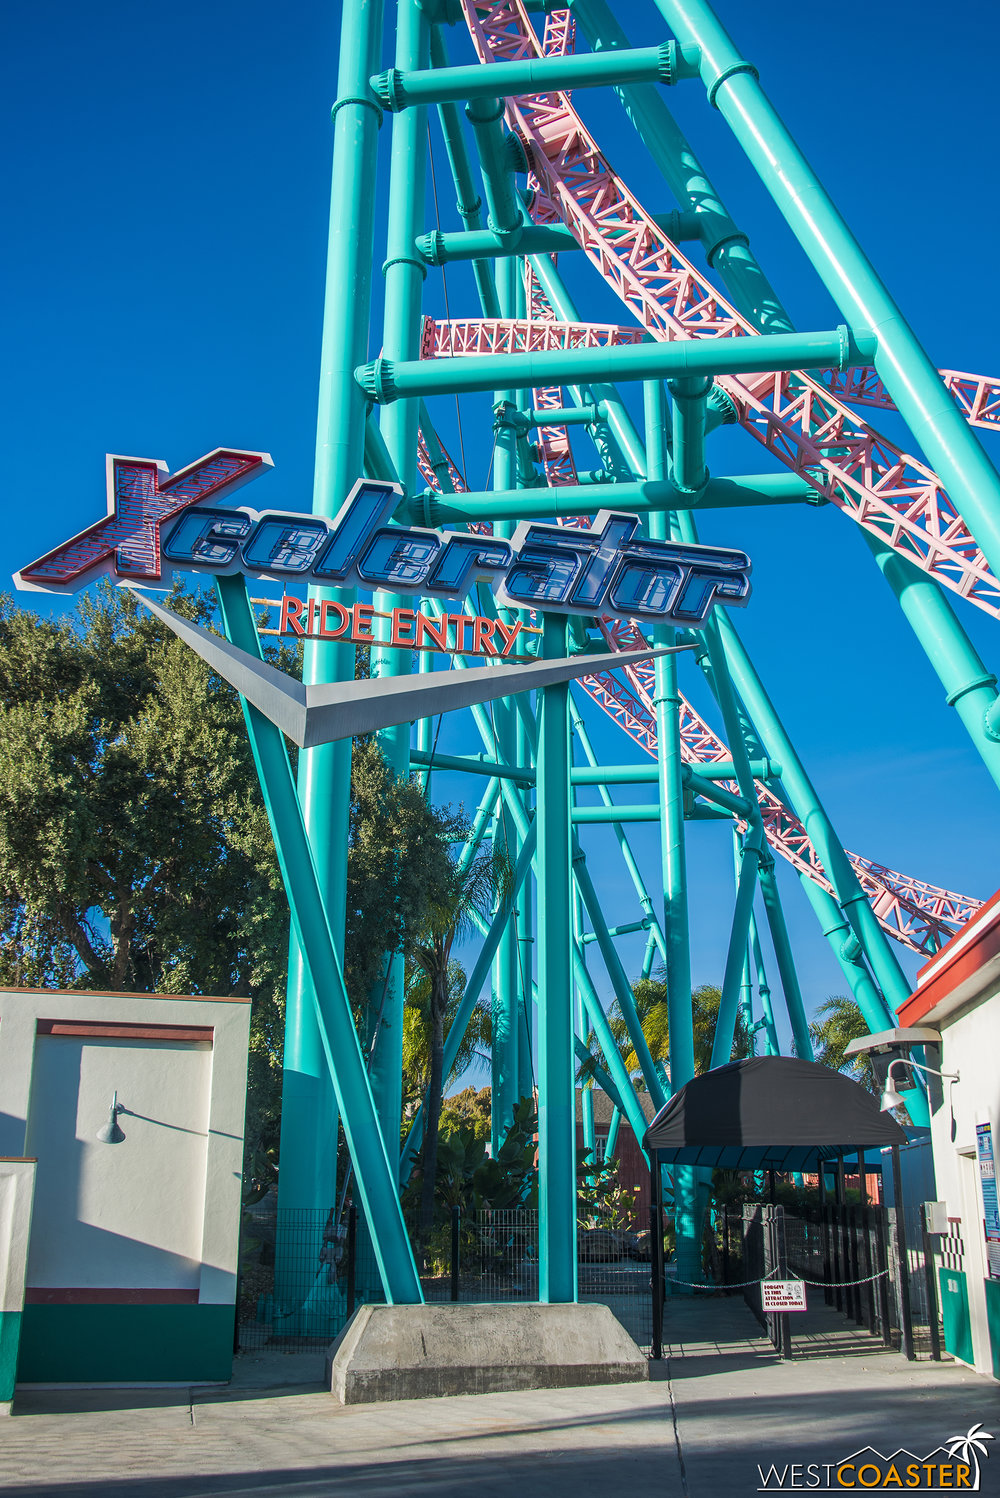 Xcelerator is still closed indefinitely.  At this rate, HangTime may open before this reopens!